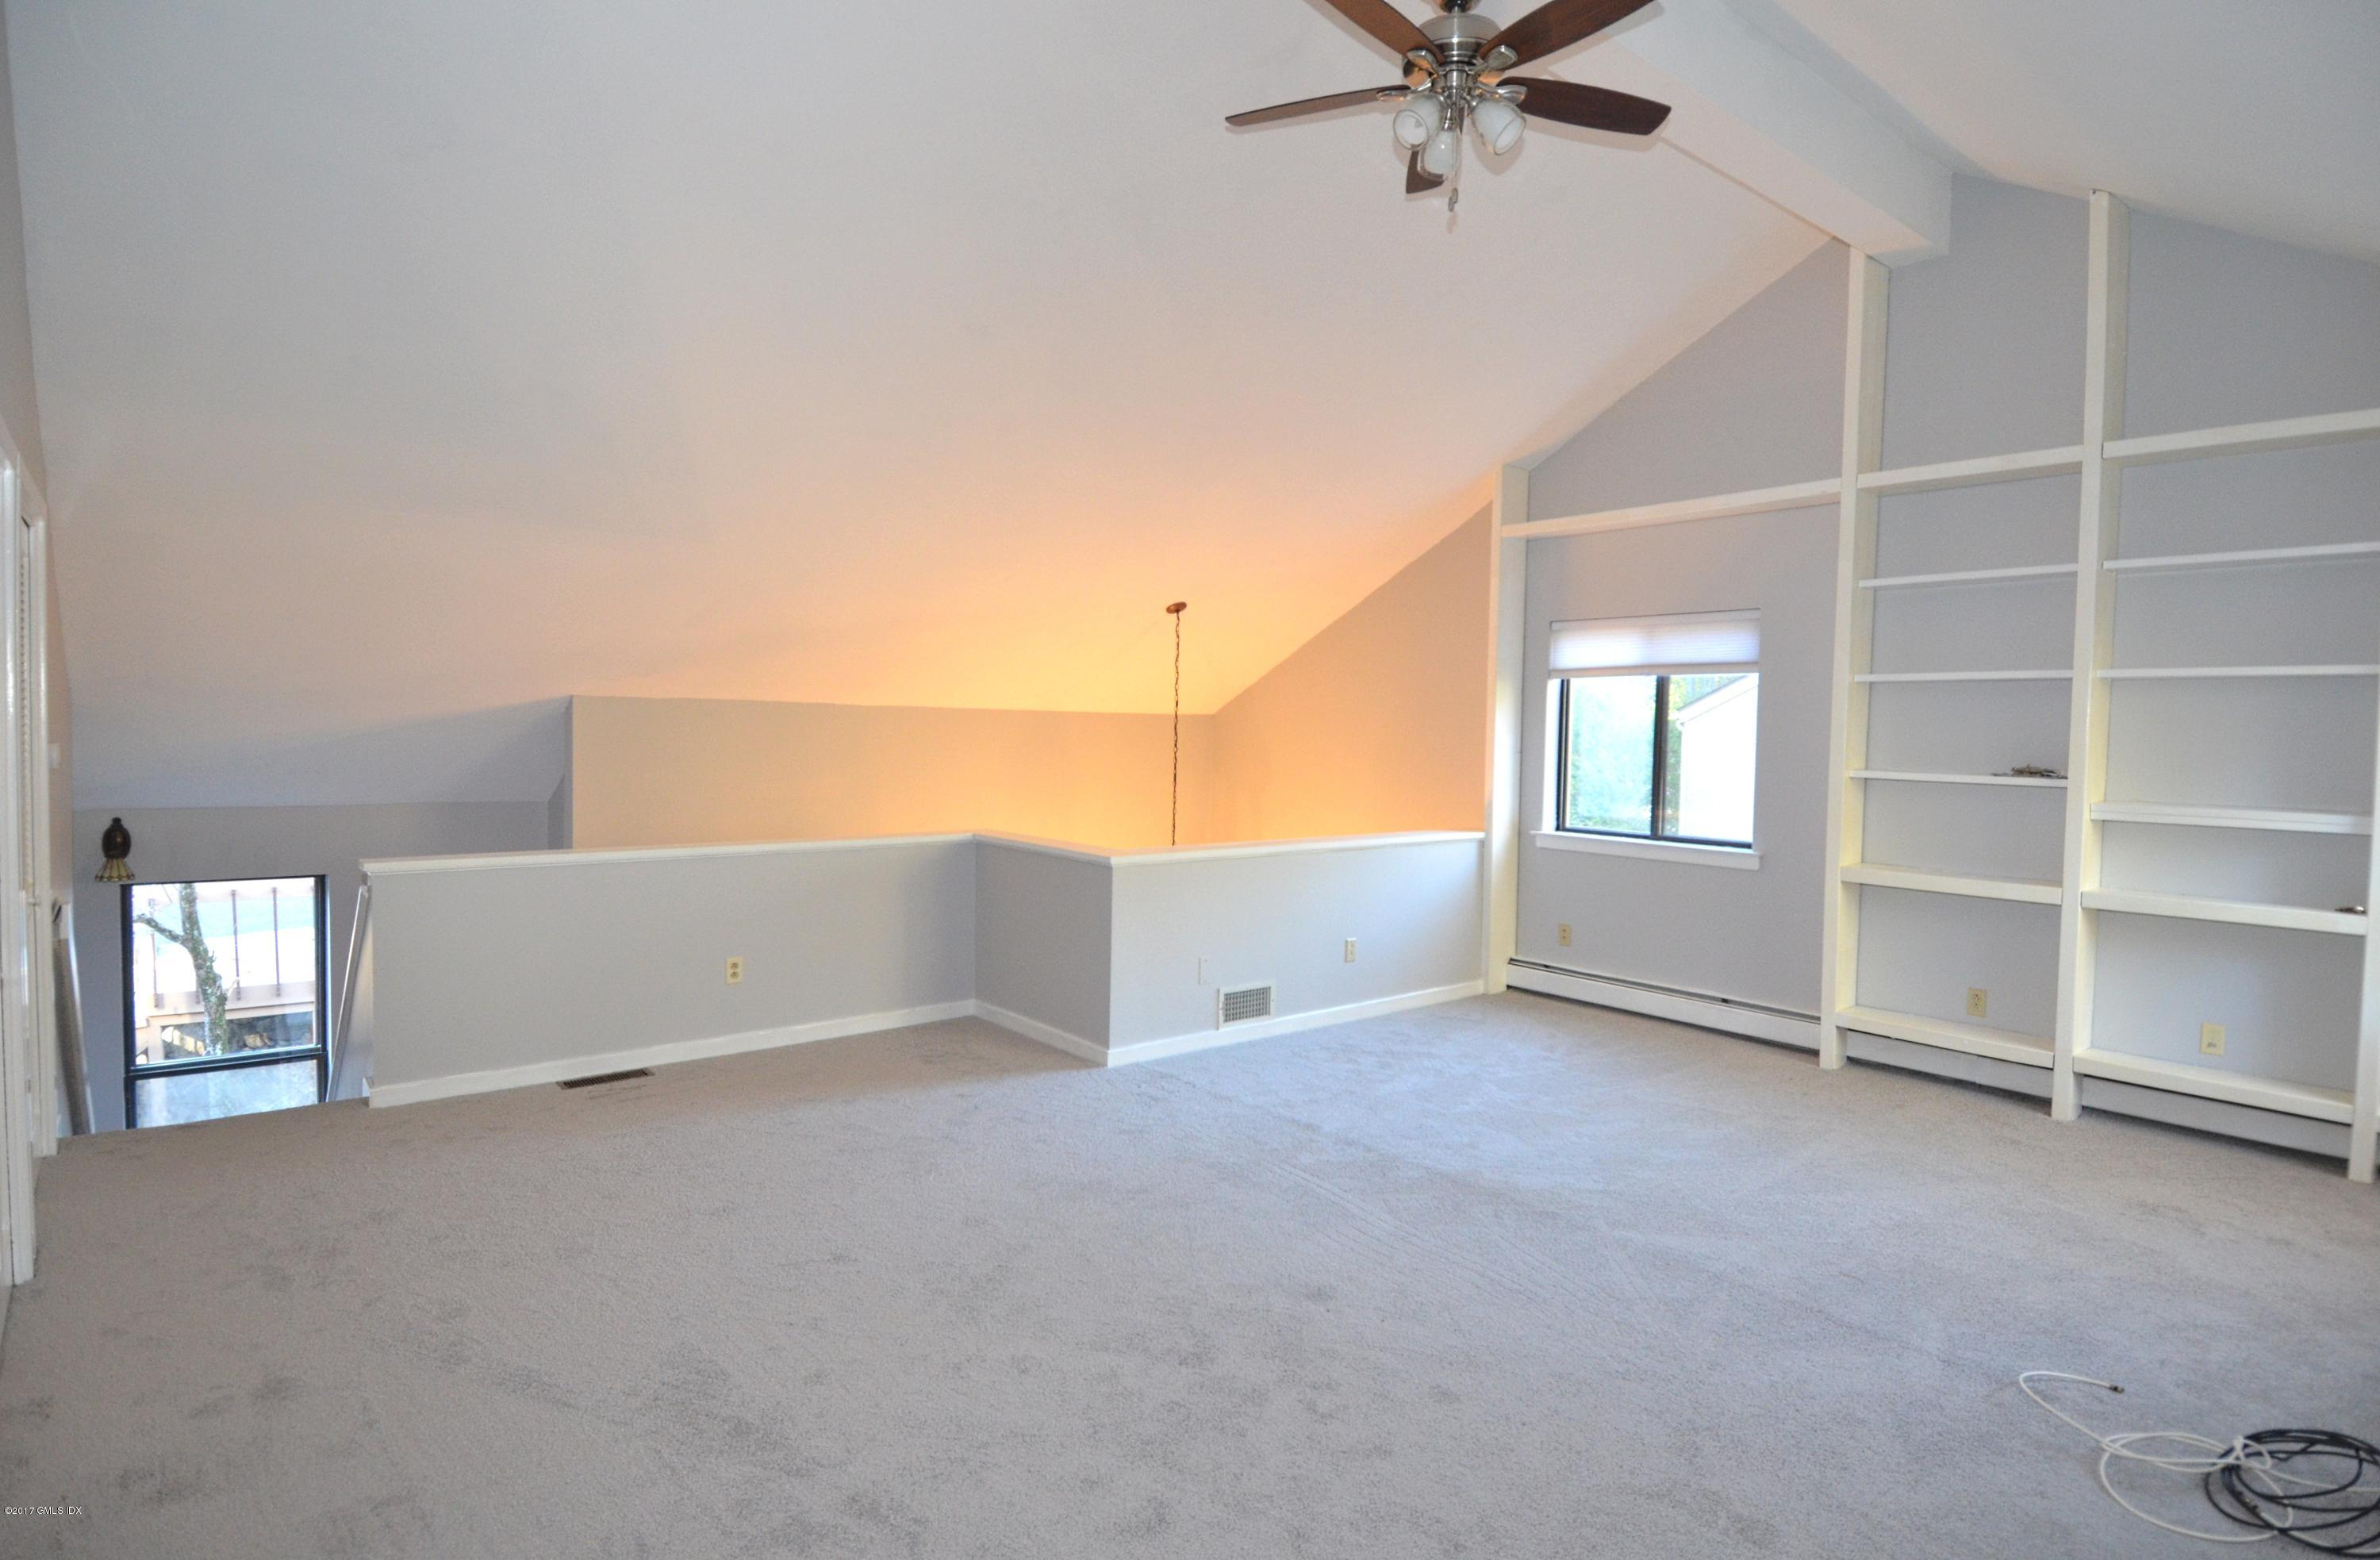 301 River West Greenwich,Connecticut 06831,2 Bedrooms Bedrooms,2 BathroomsBathrooms,Condominium,River West,106956